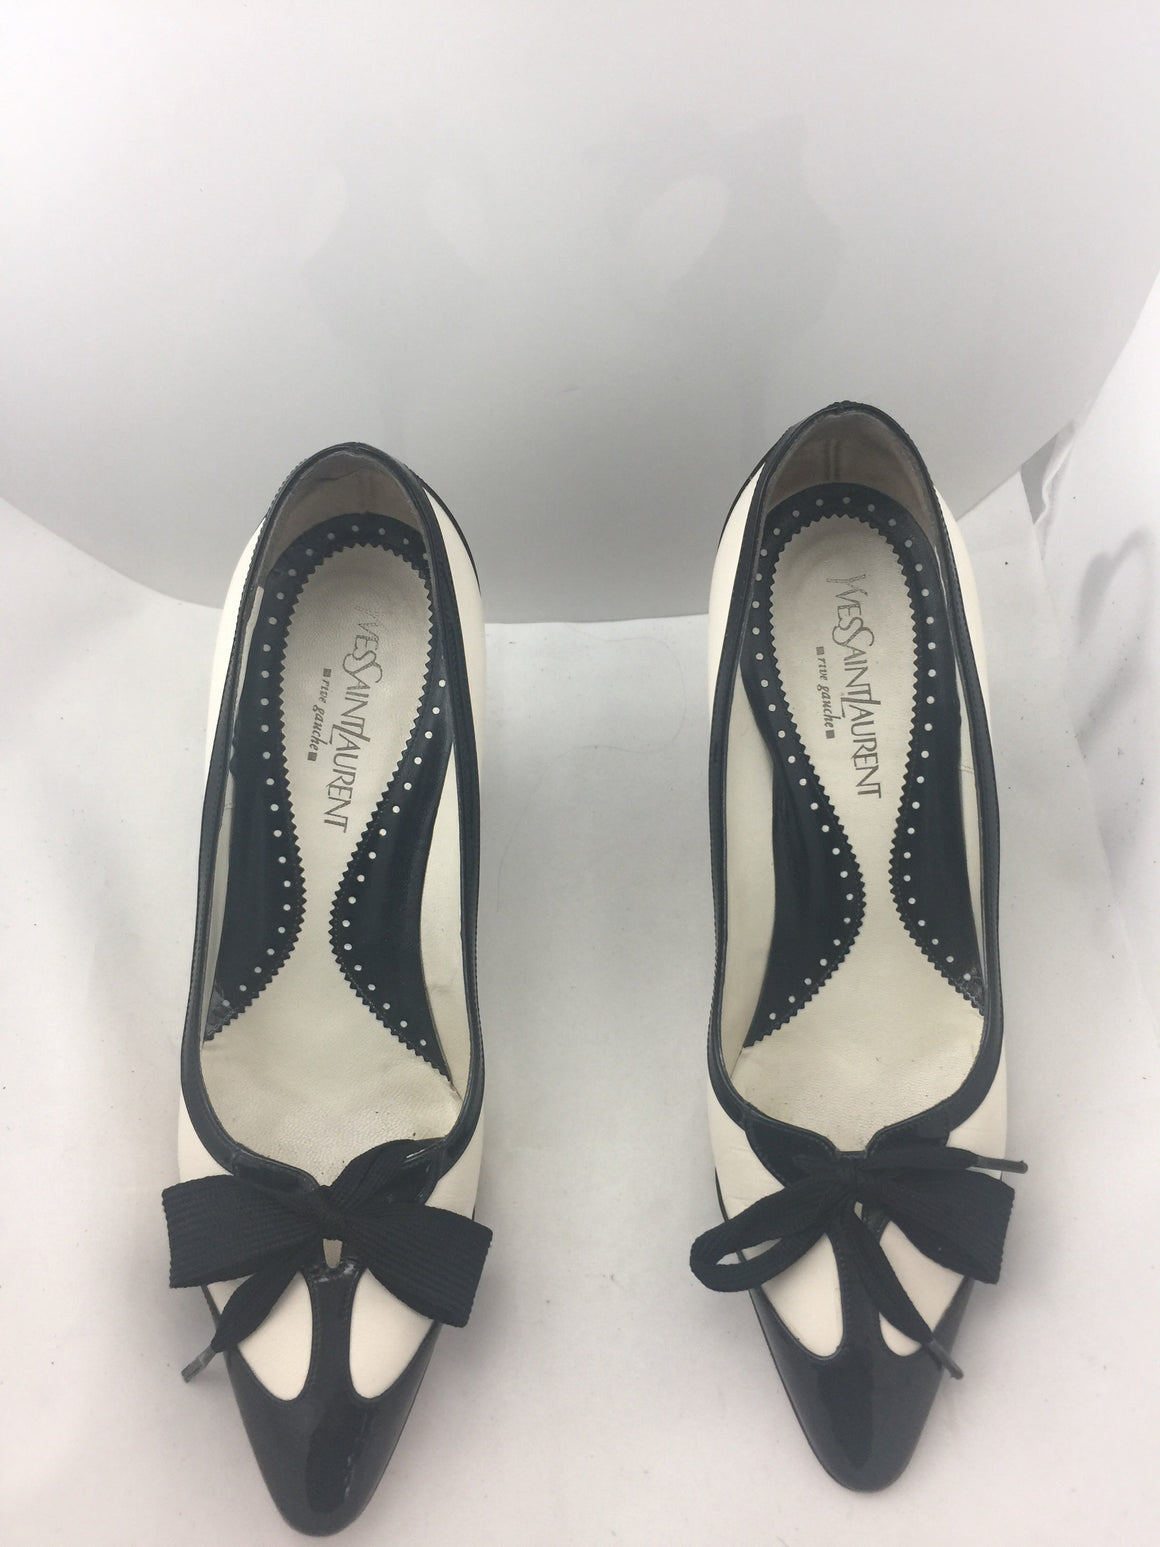 Yves St. Laurent Pumps!